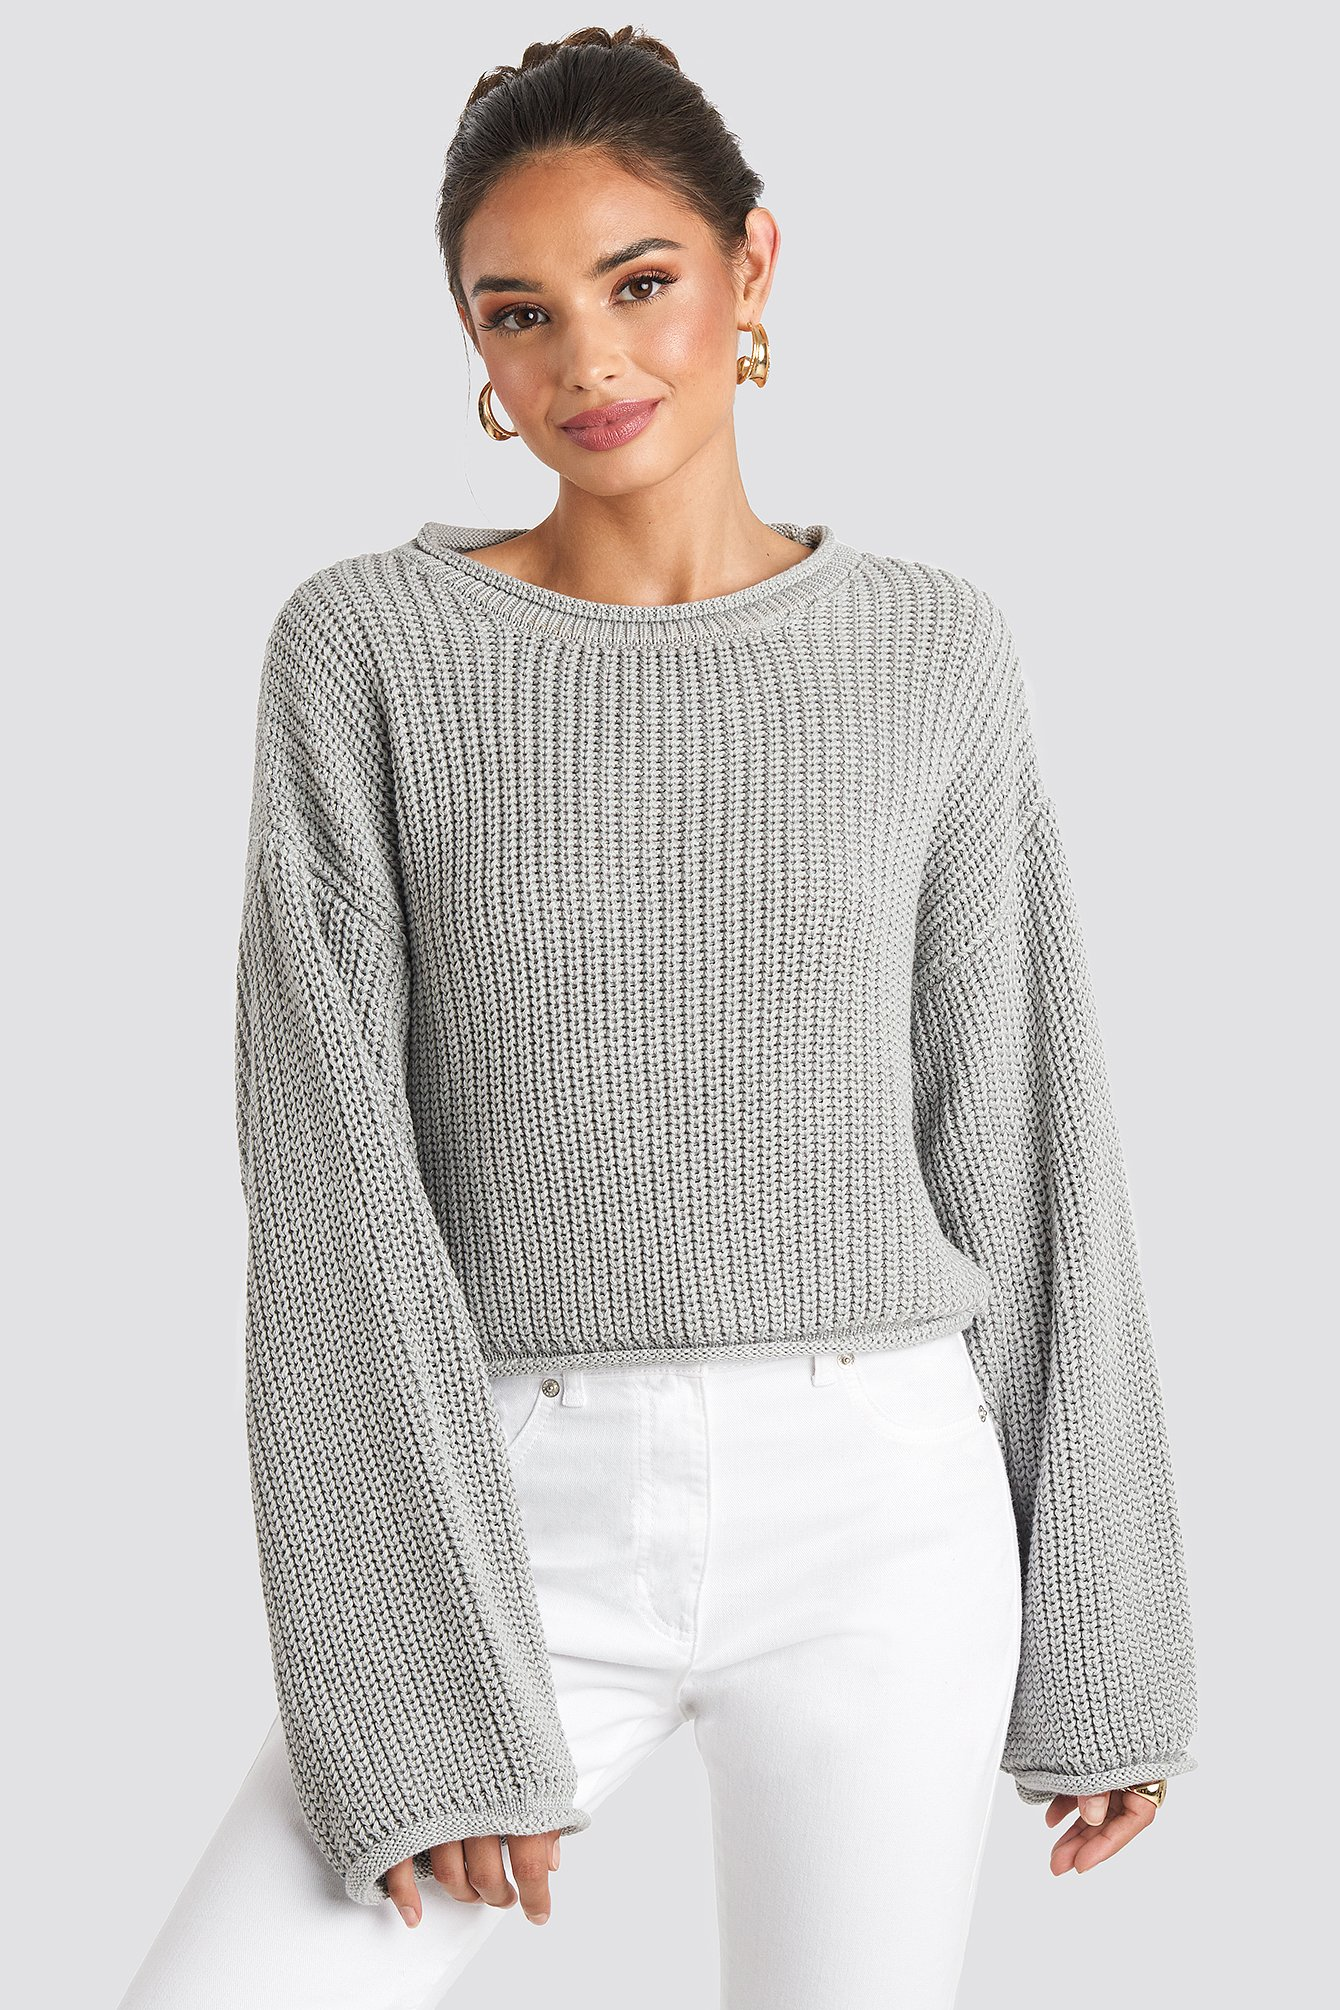 NA-KD Cropped Boat Neck Knitted Sweater - Grey | Bekleidung > Sweatshirts & -jacken > Sweatshirts | NA-KD